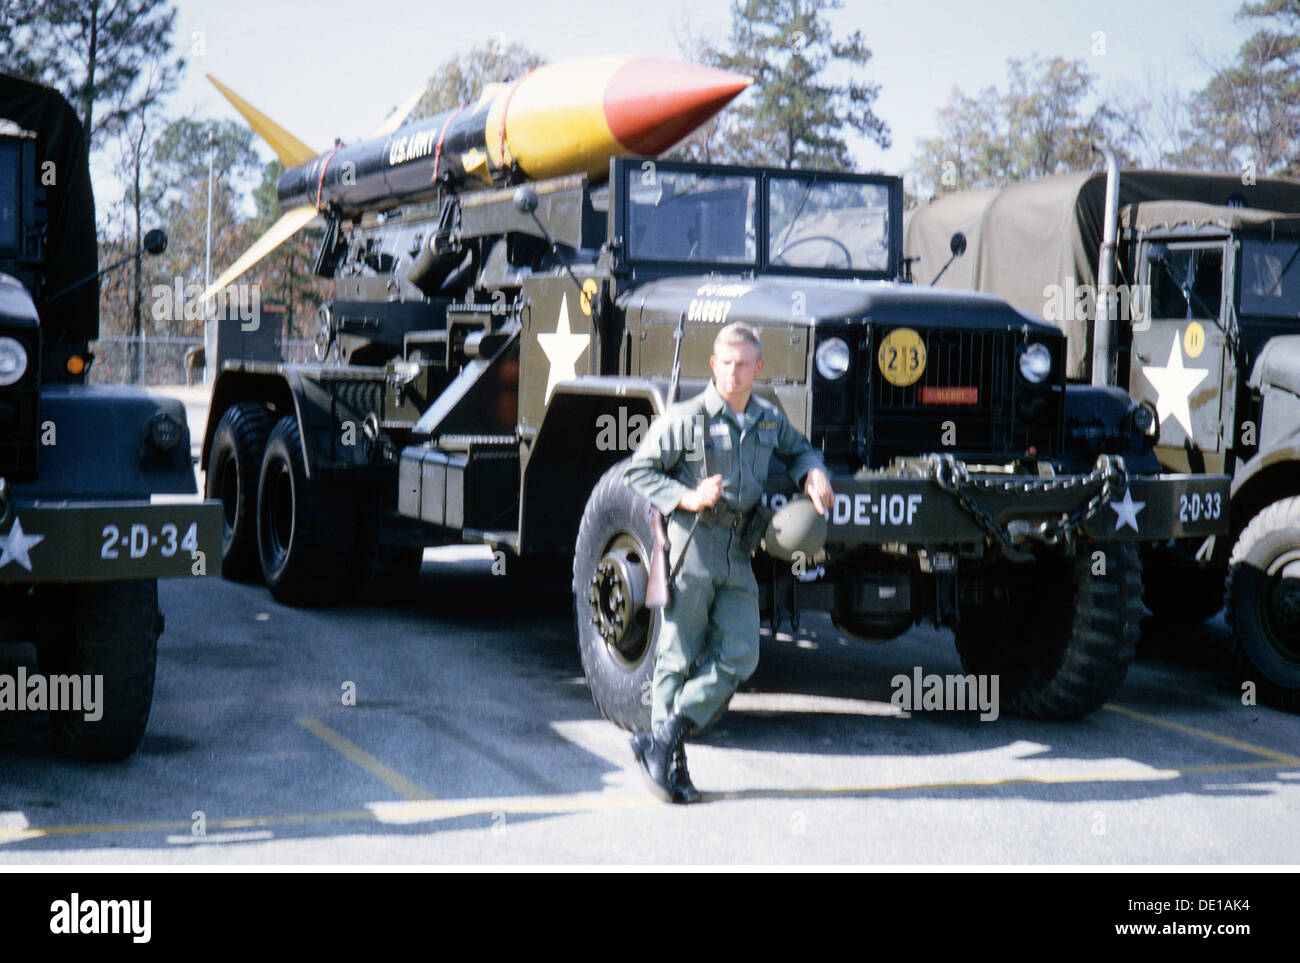 military, USA, army, missile artillery, the German soldier Dierk Piffko besides a MGR-1 Honest John short-range missile, 1964, nuclear missile, nuclear missiles, launching vehicle, firing platform, lorries, trucks, lorry, truck, SRBM, MGR1, MGR 1, rocket, rockets, uniform, uniforms, soldier, soldiers, armed forces, 1960s, 60s, 20th century, people, man, men, male, nuclear weapon, nuke, nuclear weapons, nukes, USA, United States of America, army, armies, short-range missile, short-range missiles, historic, historical, Additional-Rights-Clearences-NA - Stock Image